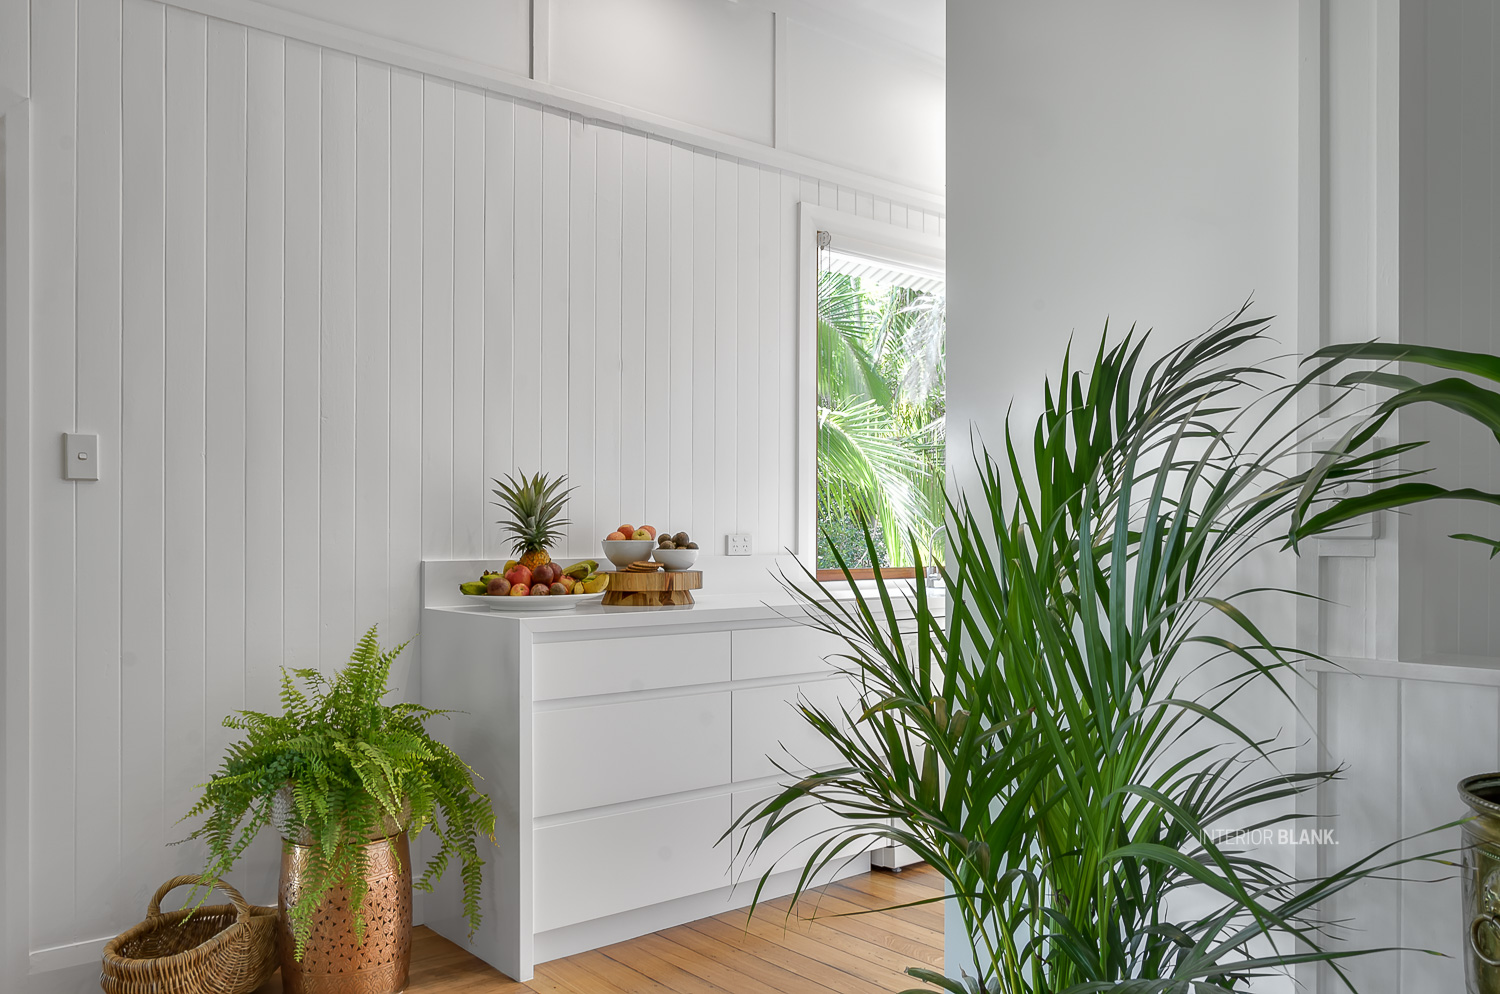 Kitchen renovations Bangalow_White satin 2pac cabinets_fingerpull handles_Quantum Quartz Stone benchtops_VJ wall Panelling_white kitchens. storage solutions